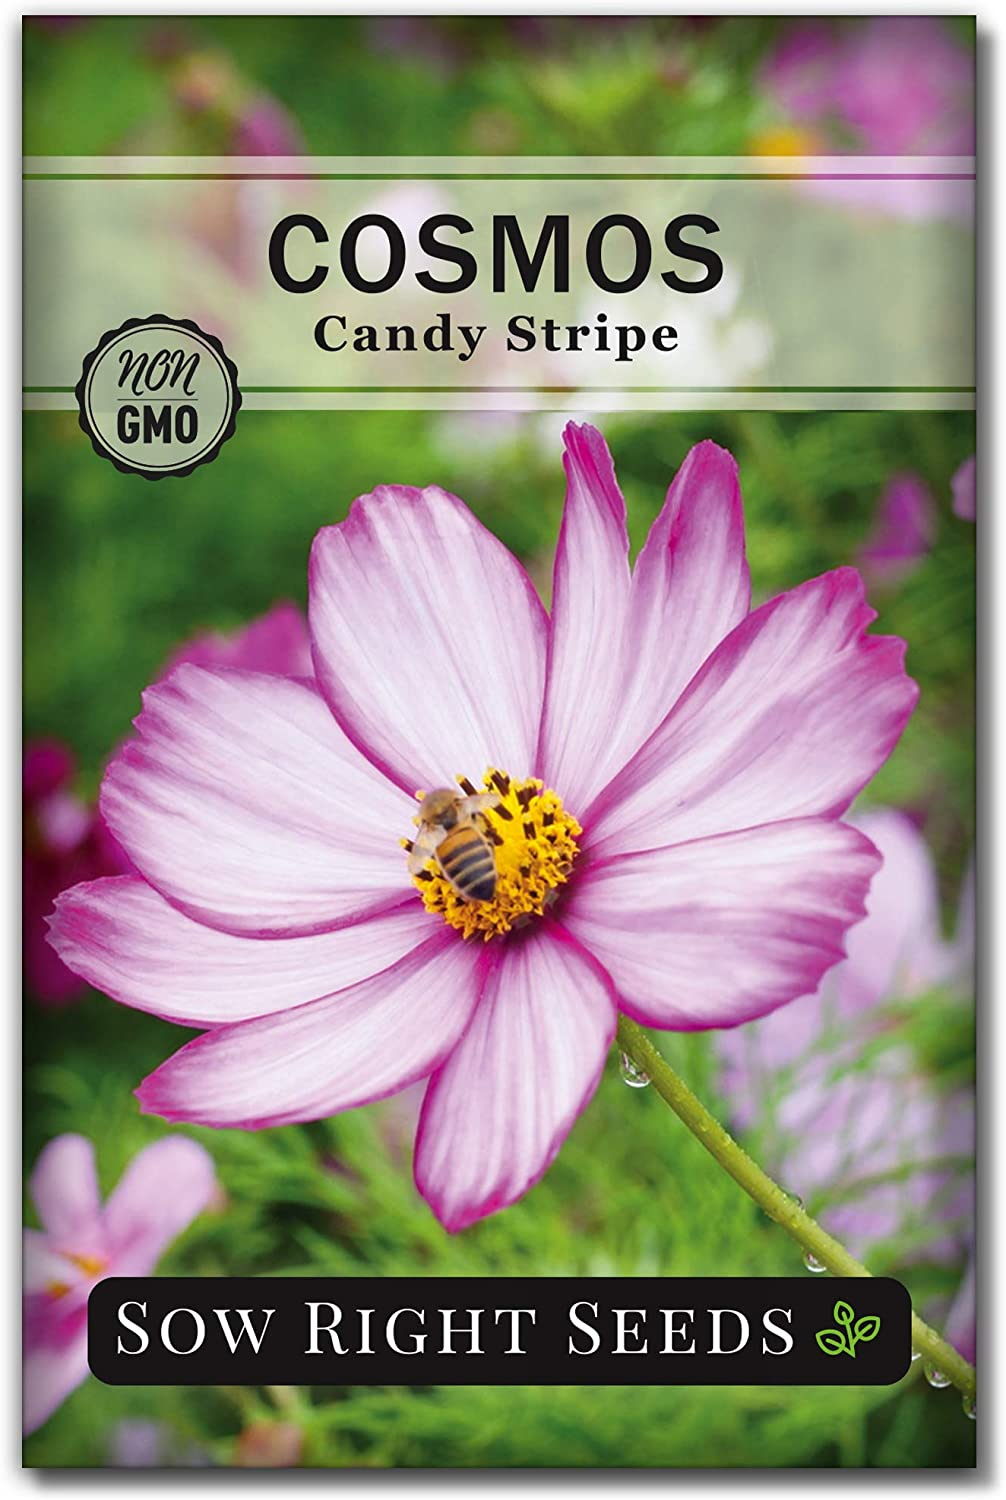 Sow Right Seeds - [Alternative dealer] Candystripe Planting for Flower 2021 Cosmos